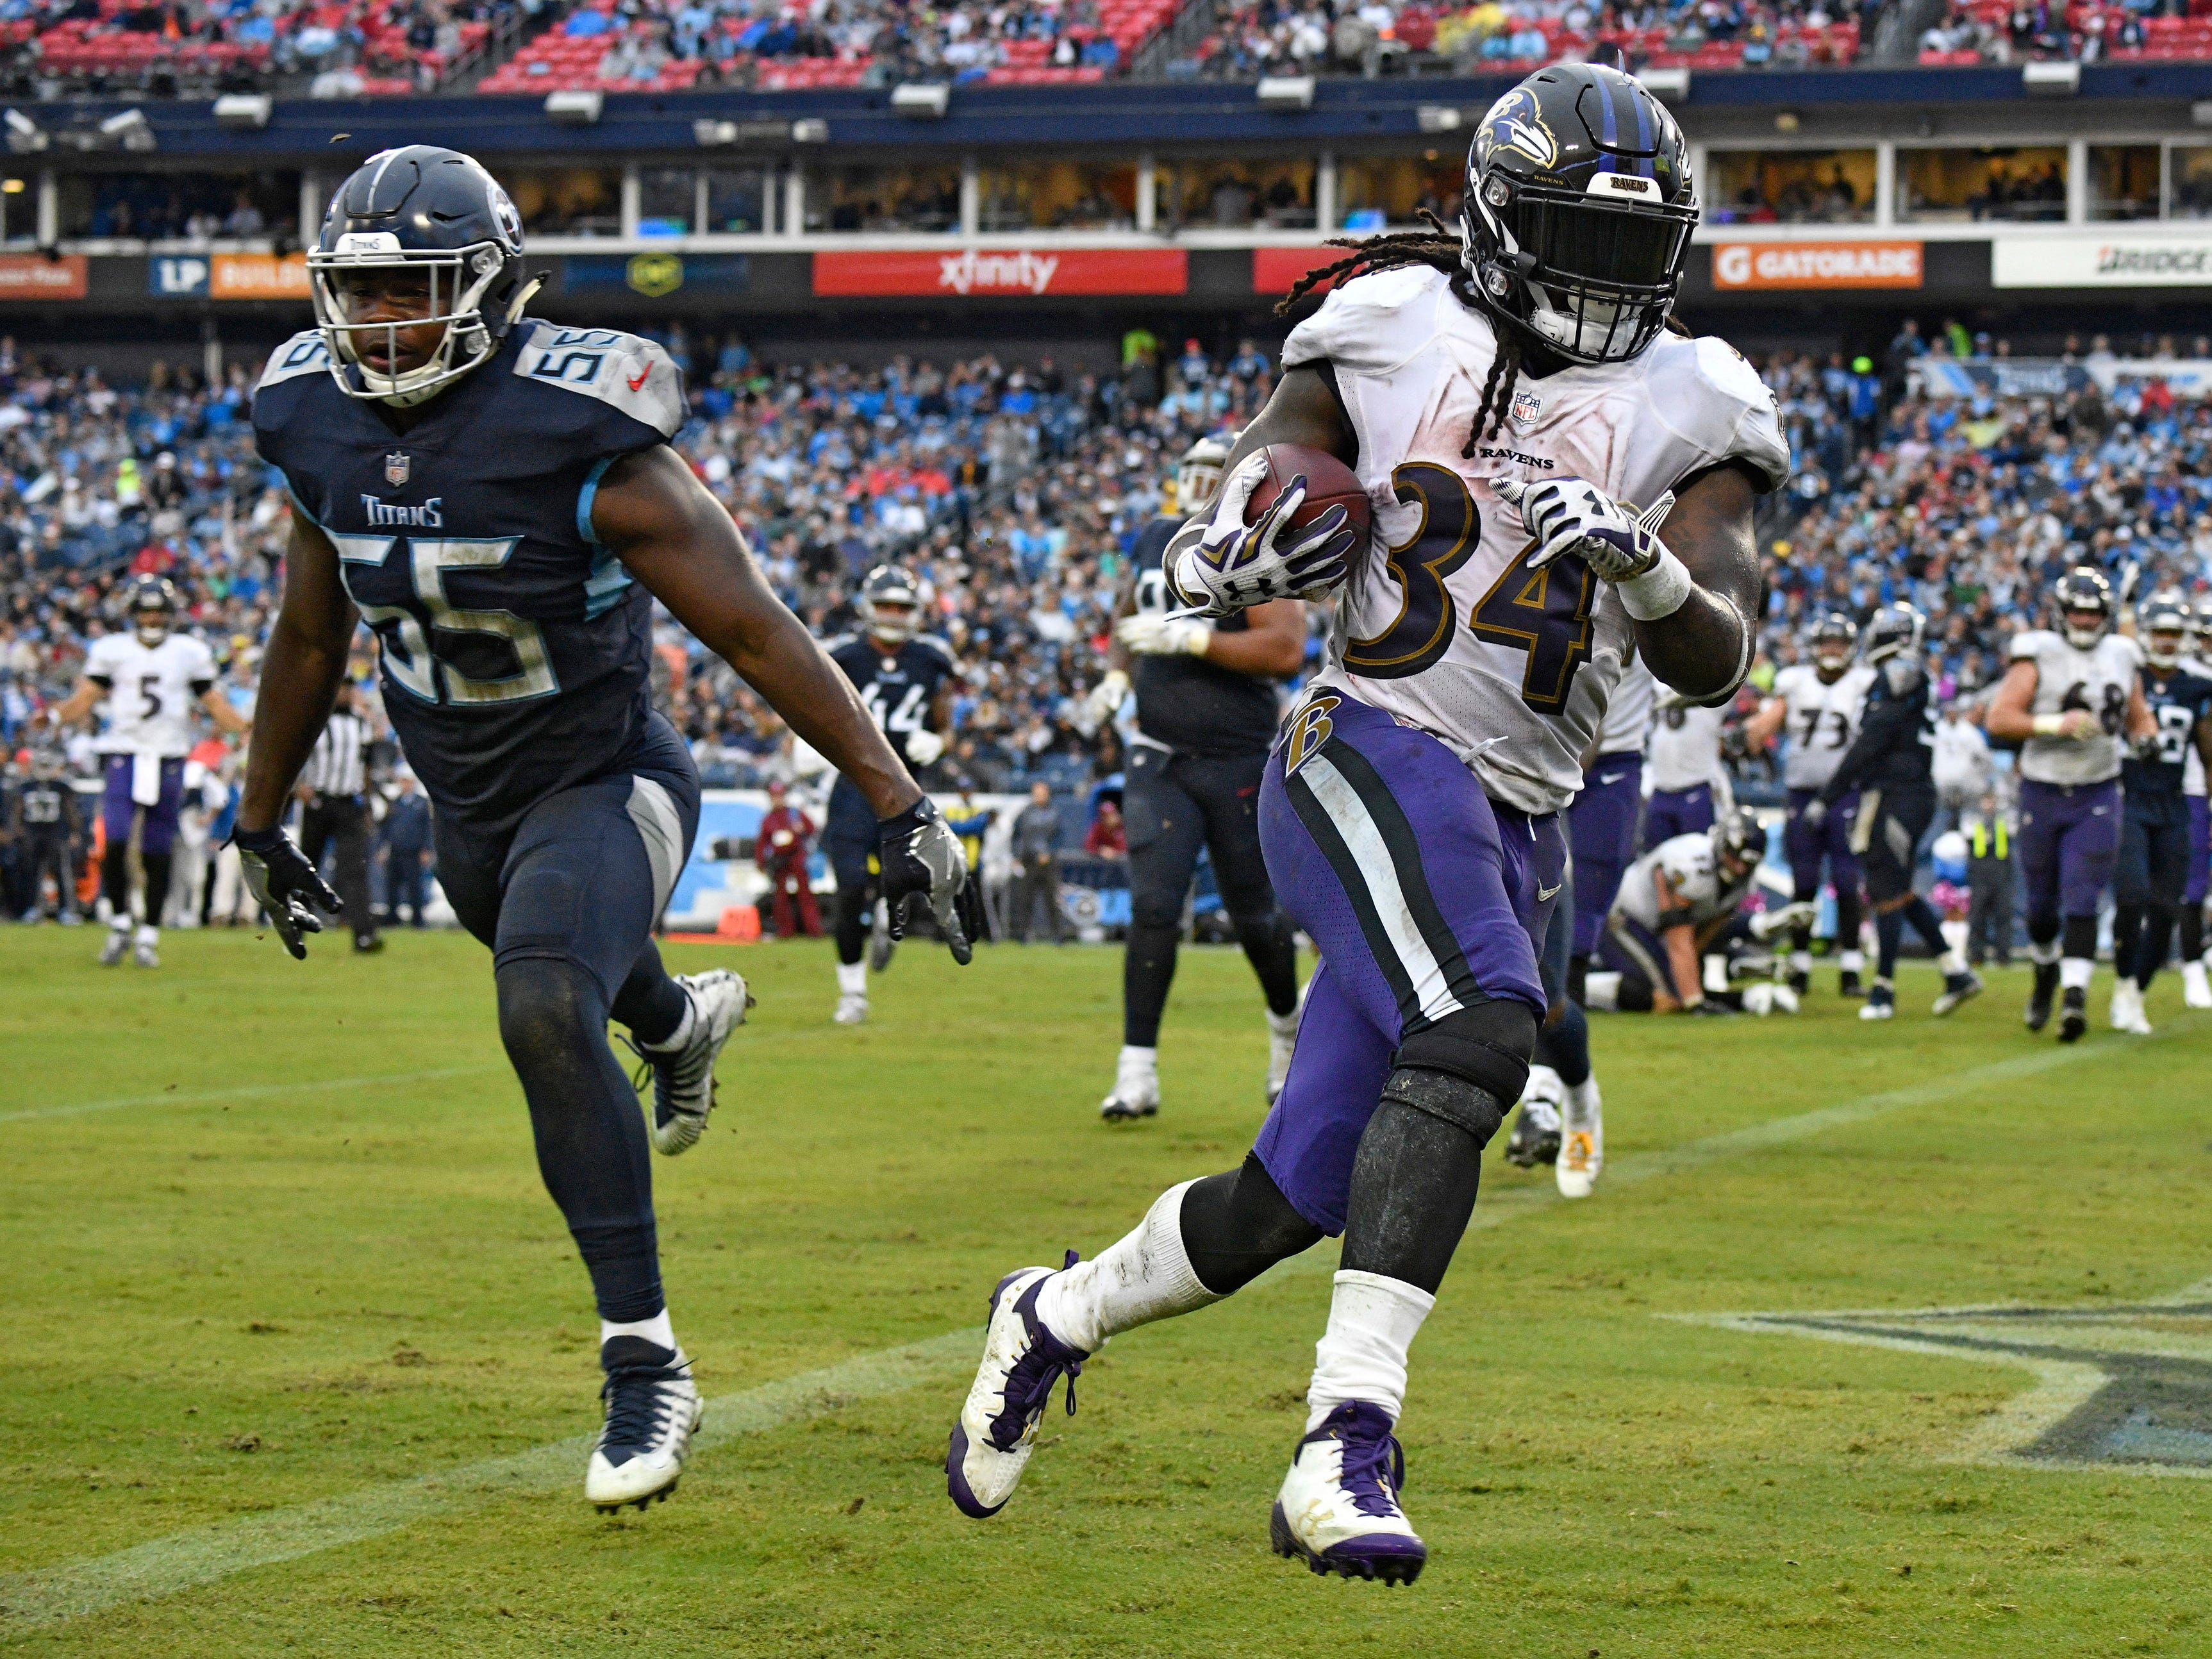 Ravens running back Alex Collins (34) gets by Titans linebacker Jayon Brown (55) for his second touchdown of the game during the third quarter at Nissan Stadium Sunday, Oct. 14, 2018, in Nashville, Tenn.